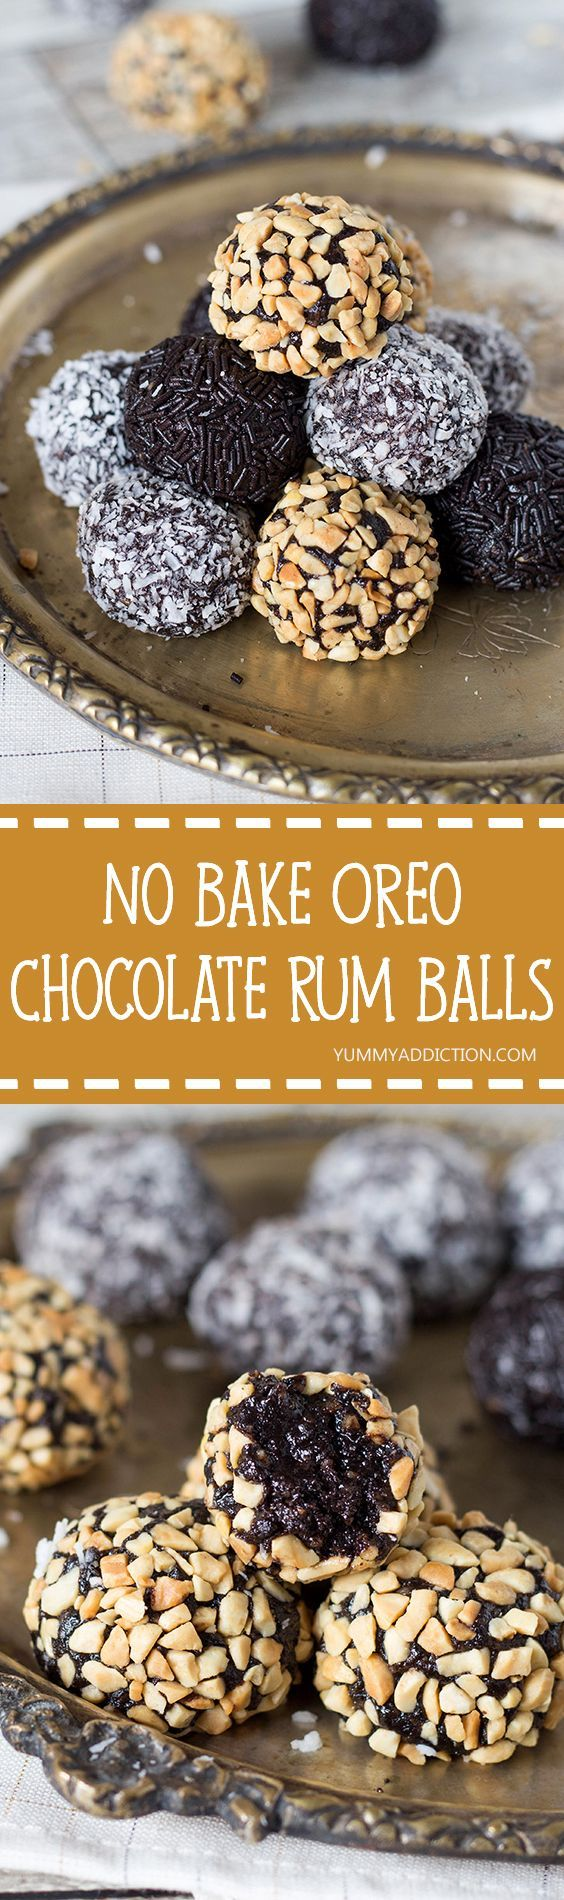 These Oreo Chocolate Rum Balls stuffed with walnuts will be the easiest thing you have ever made. They require no oven time at all, and are perfect for serving the guests!   yummyaddiction.com